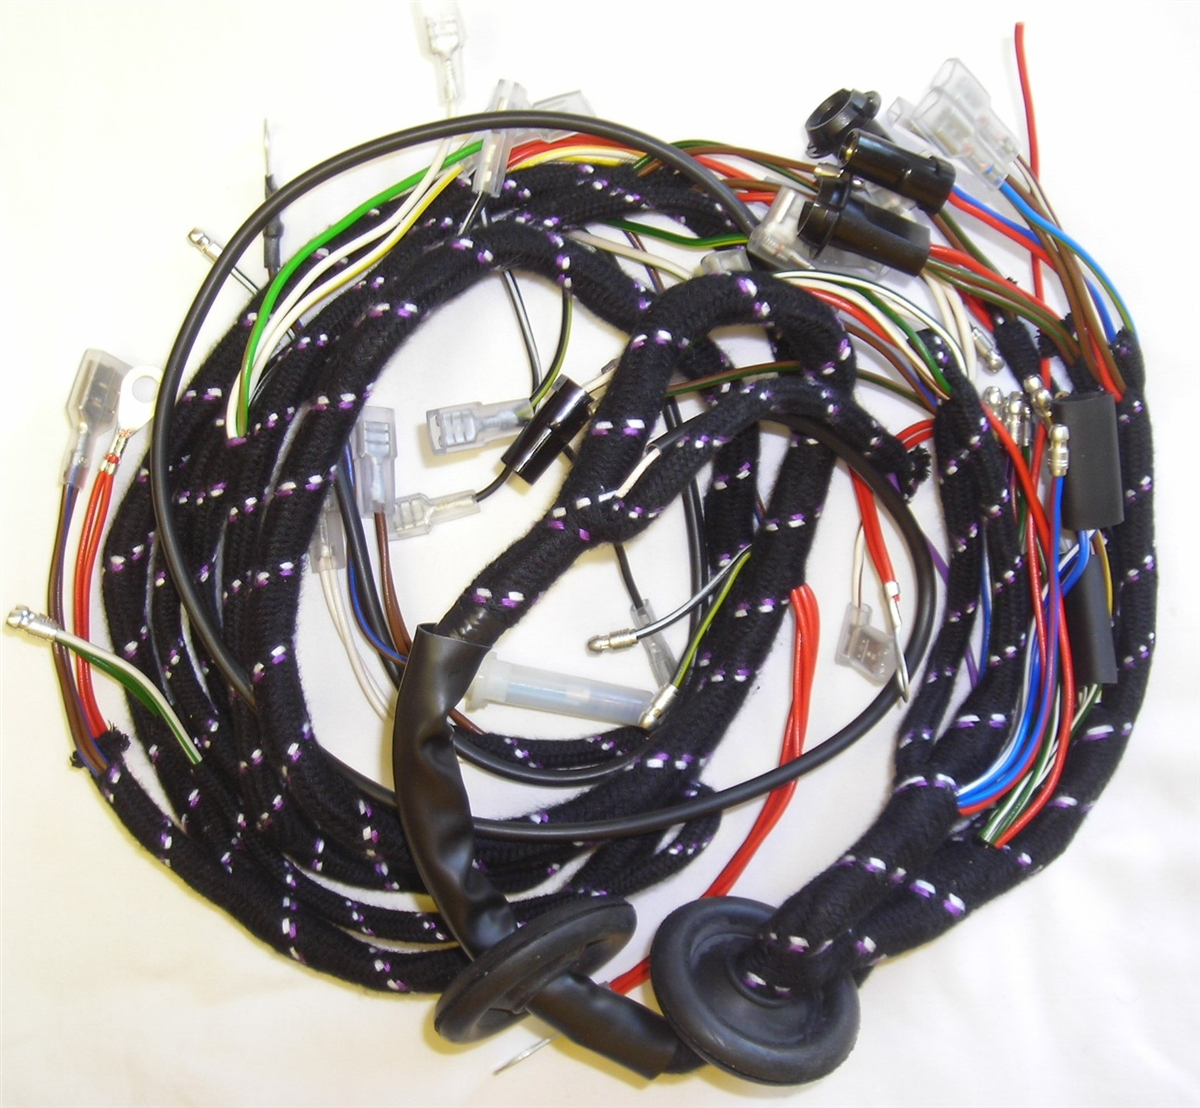 Triumph Motorcycle Wiring Harness. 19761978 Triumph T140v Tr7rv Main Harness Mc73pb. Wiring. Triumph Motorcycles Wiring Diagram At Scoala.co